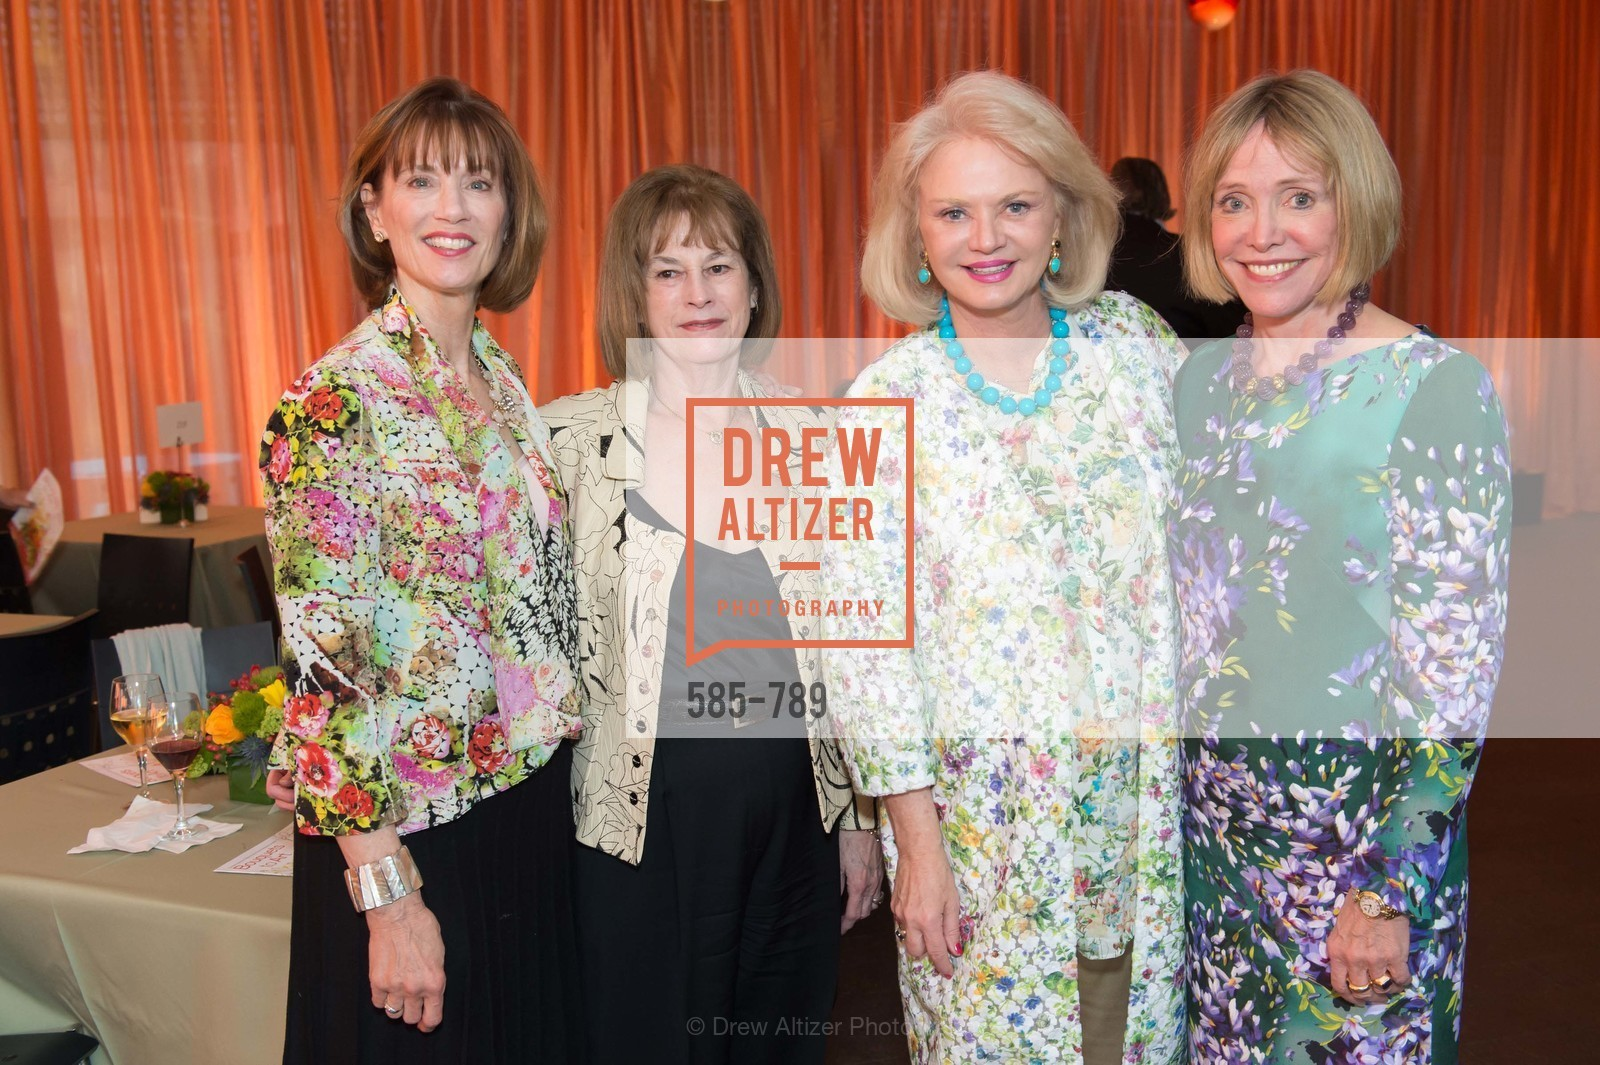 Lisa Miller, Marcia Handley, Heide Betz, Merrill Randol Sherwin, ALONZO KING LINE'S Ballet Spring Gala 2015, US, April 12th, 2015,Drew Altizer, Drew Altizer Photography, full-service agency, private events, San Francisco photographer, photographer california